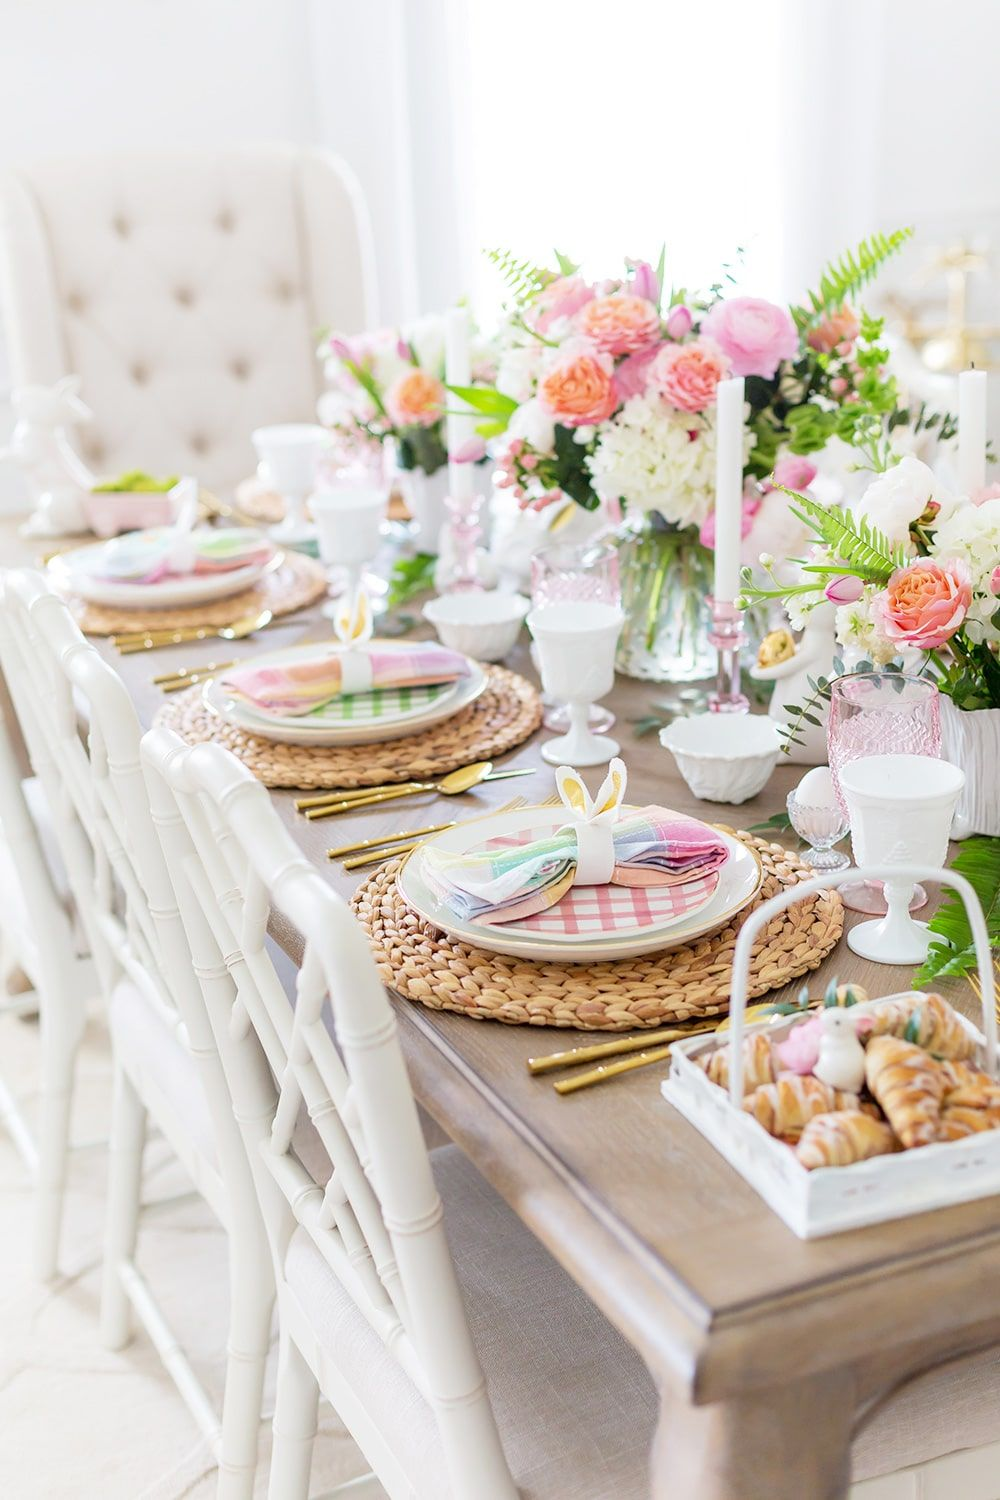 Easter Table Decor Ideas   Place Settings to Centerpieces   Pizzazzerie